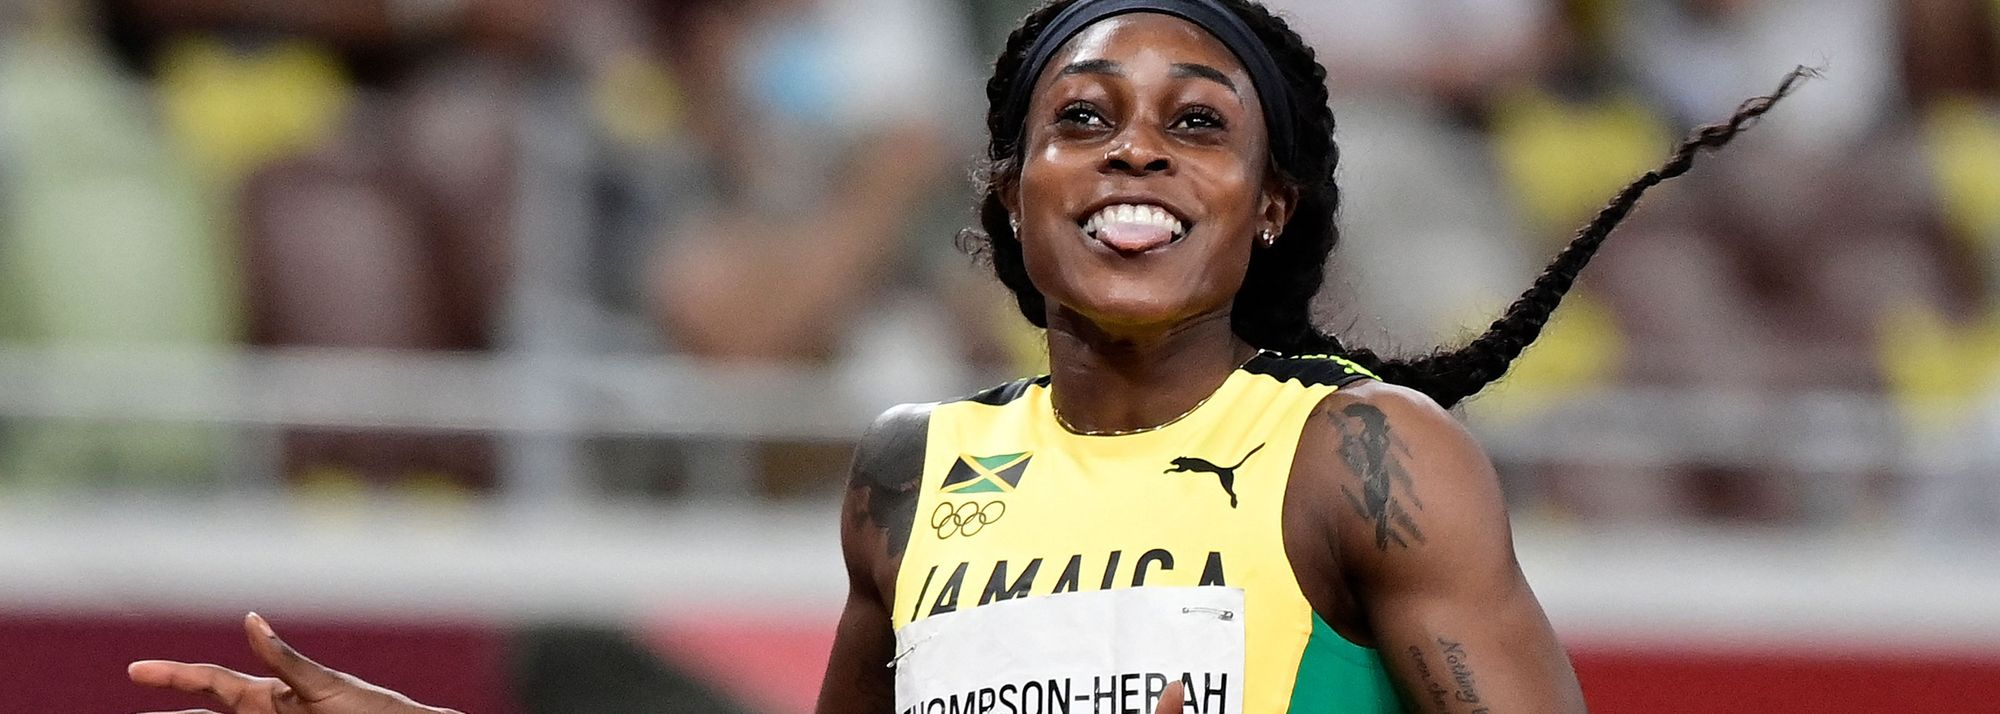 Elaine Thompson-Herah and Anita Wlodarczyk cemented their status as all-time athletics greats.